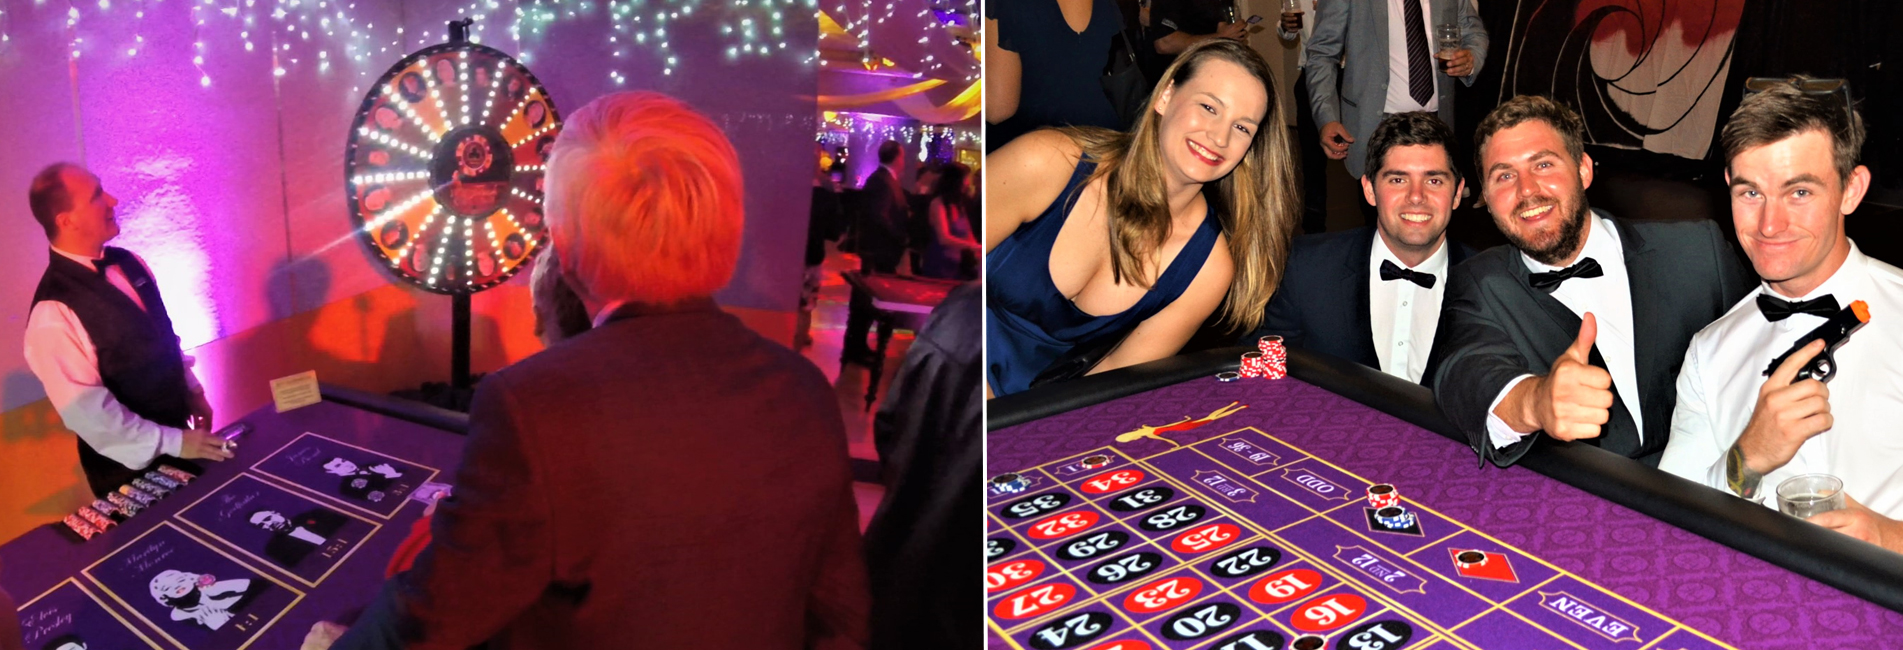 James Bond Casino Hire Mandurah, Casino Hire Joondalup, Casino Night Rockingham